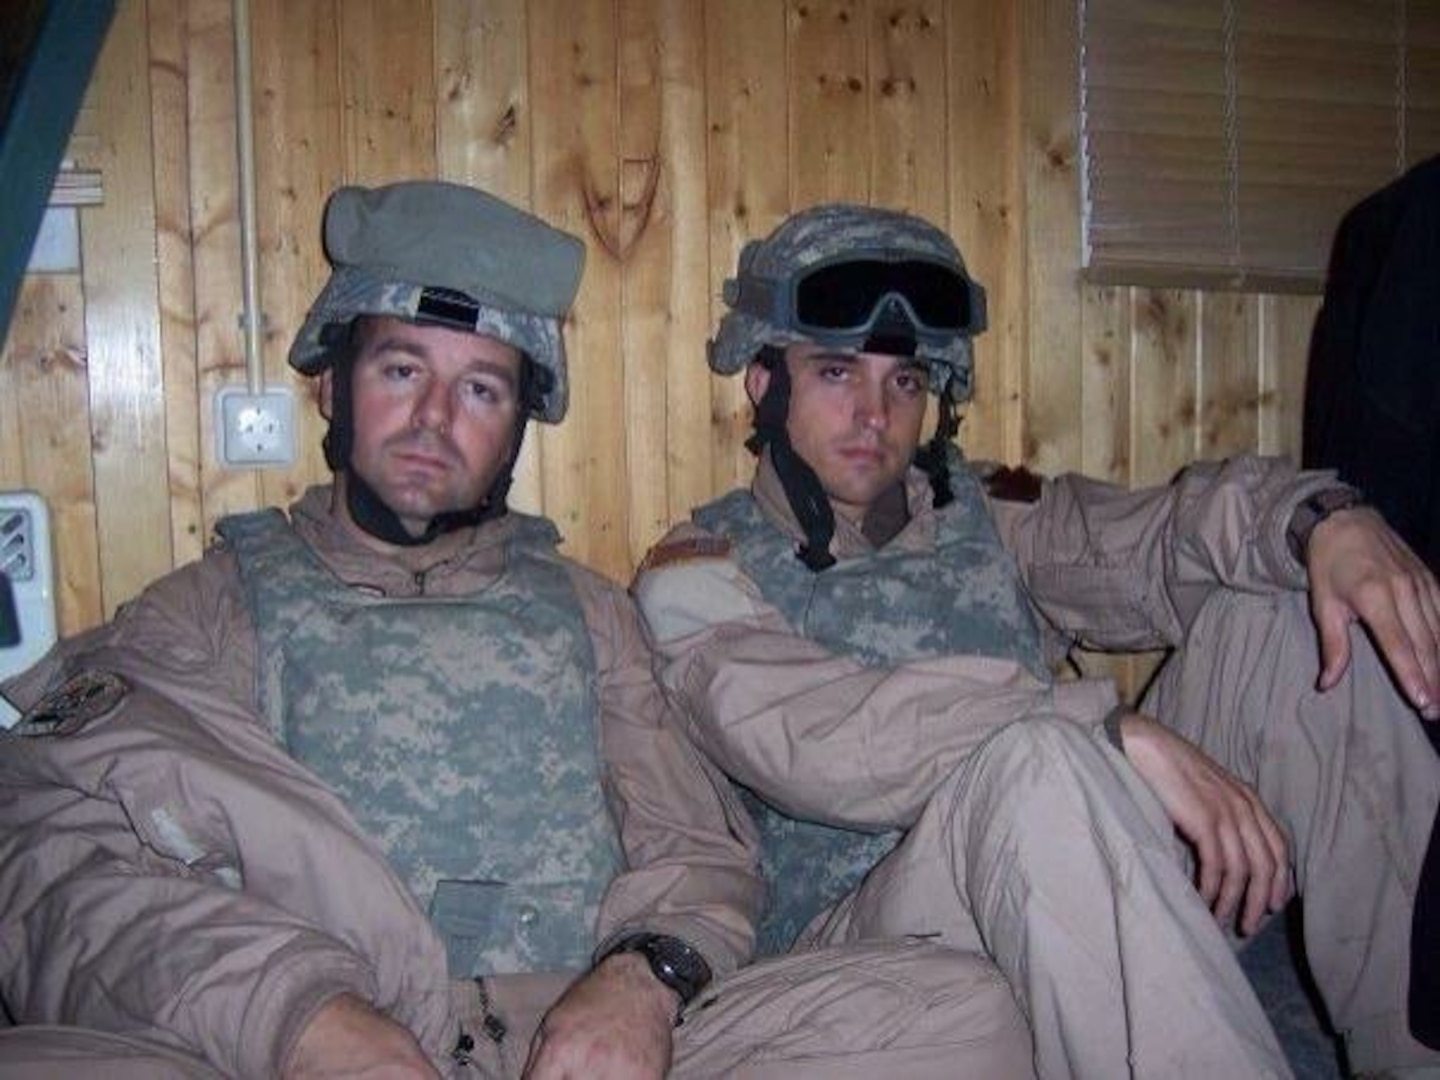 Chief Warrant Officer 3 Rich Adams and 1st Lt. Ernie Carlson flew 1500 hours of combat missions in an AH-64 Apache helicopter during Operation Iraqi Freedom in 2006. Fifteen years later, now Chief Warrant Officer 5 Adams and Maj. Carlson are back in the Middle East serving with the 28th Expeditionary Combat Aviation Brigade.